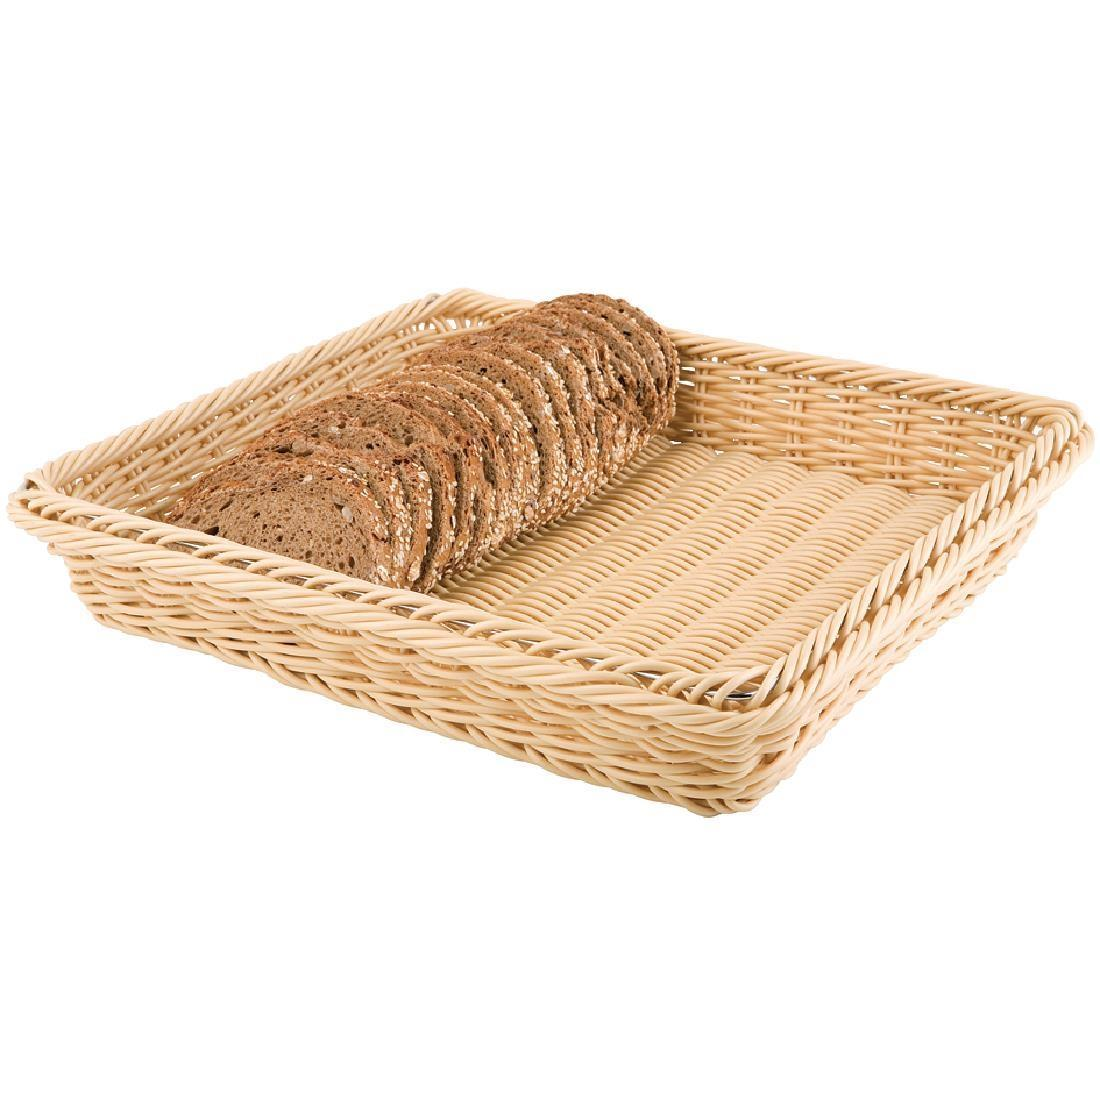 Polypropylene Natural Rattan Basket 1/2 GN - Each - CF303